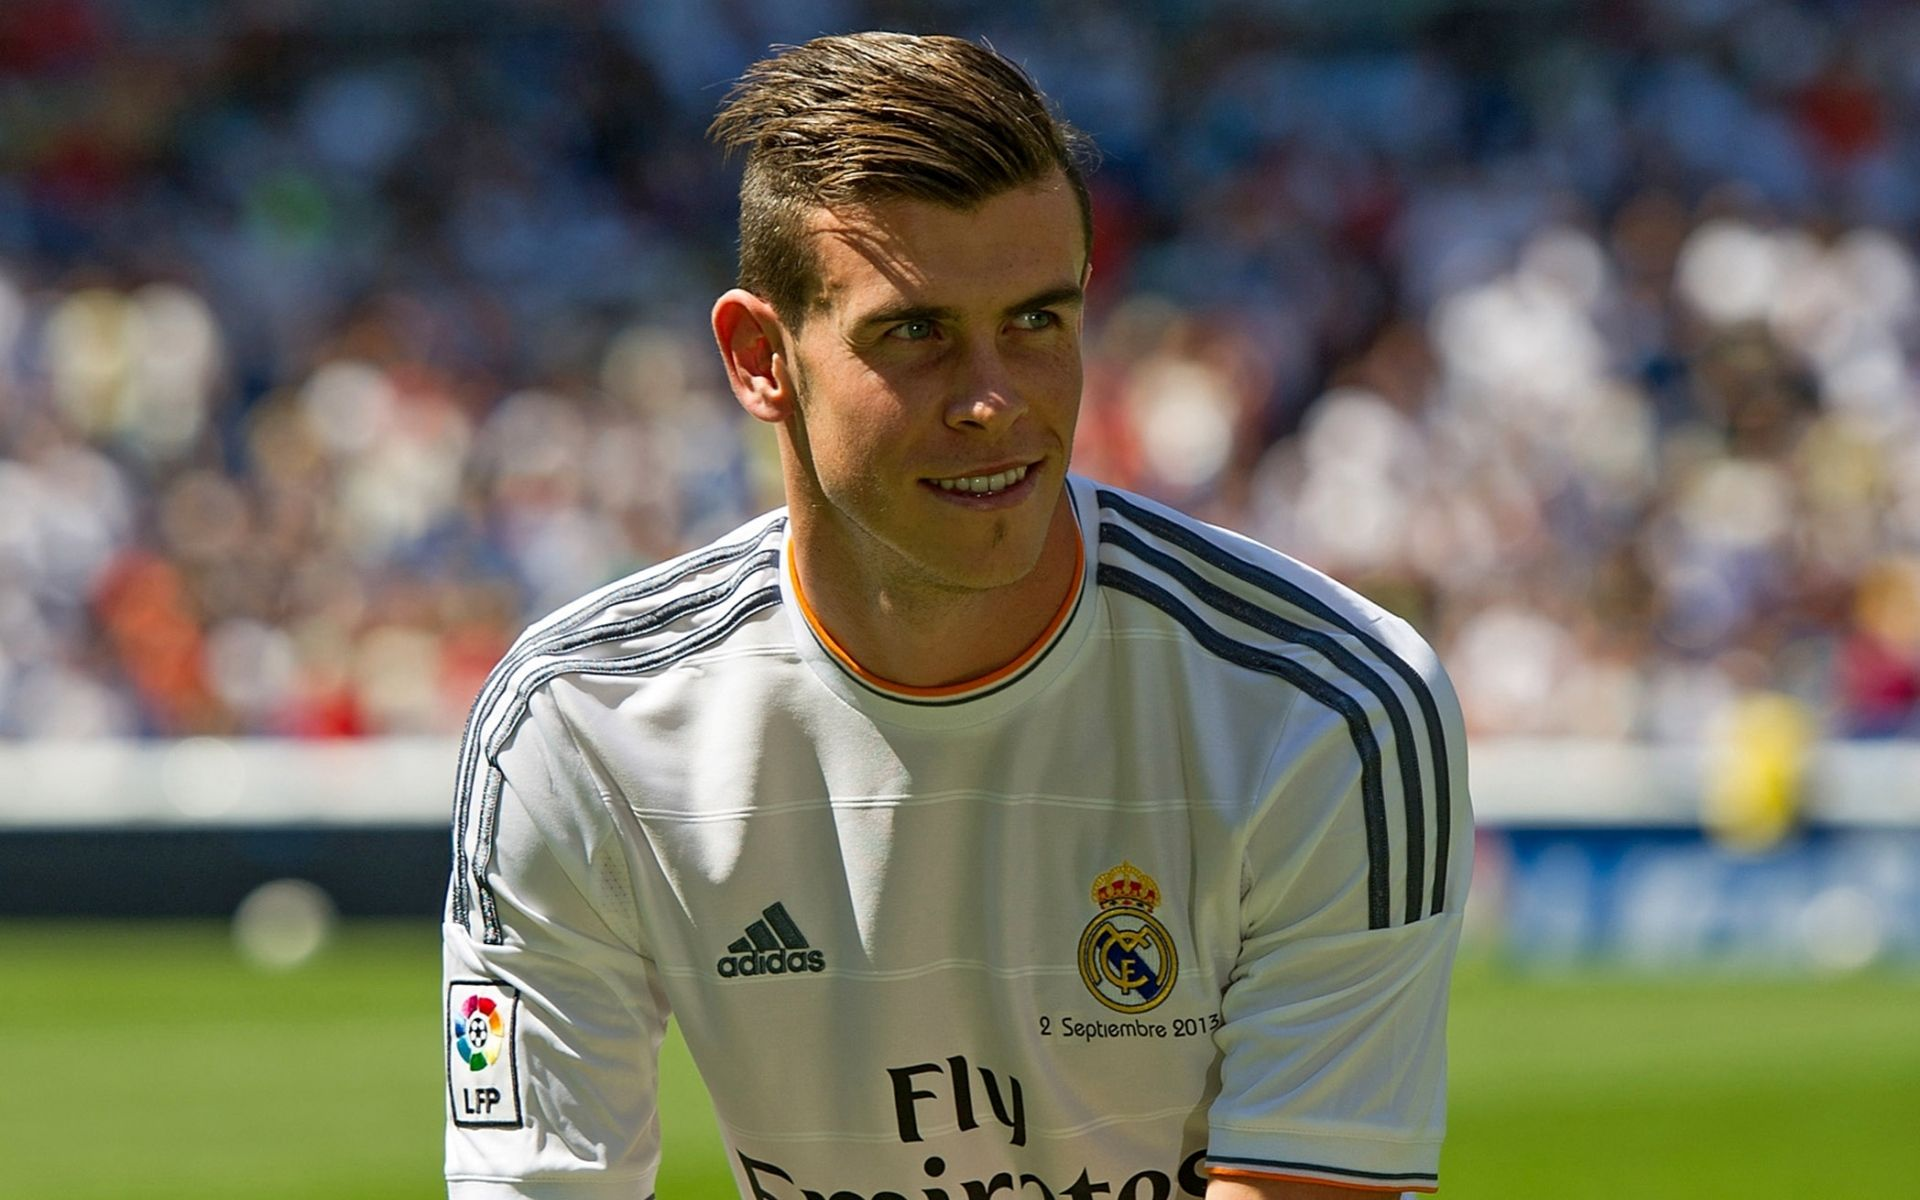 gareth bale hair style gareth bale haircut real madrid wallpaper jpg 1920 215 1200 9759